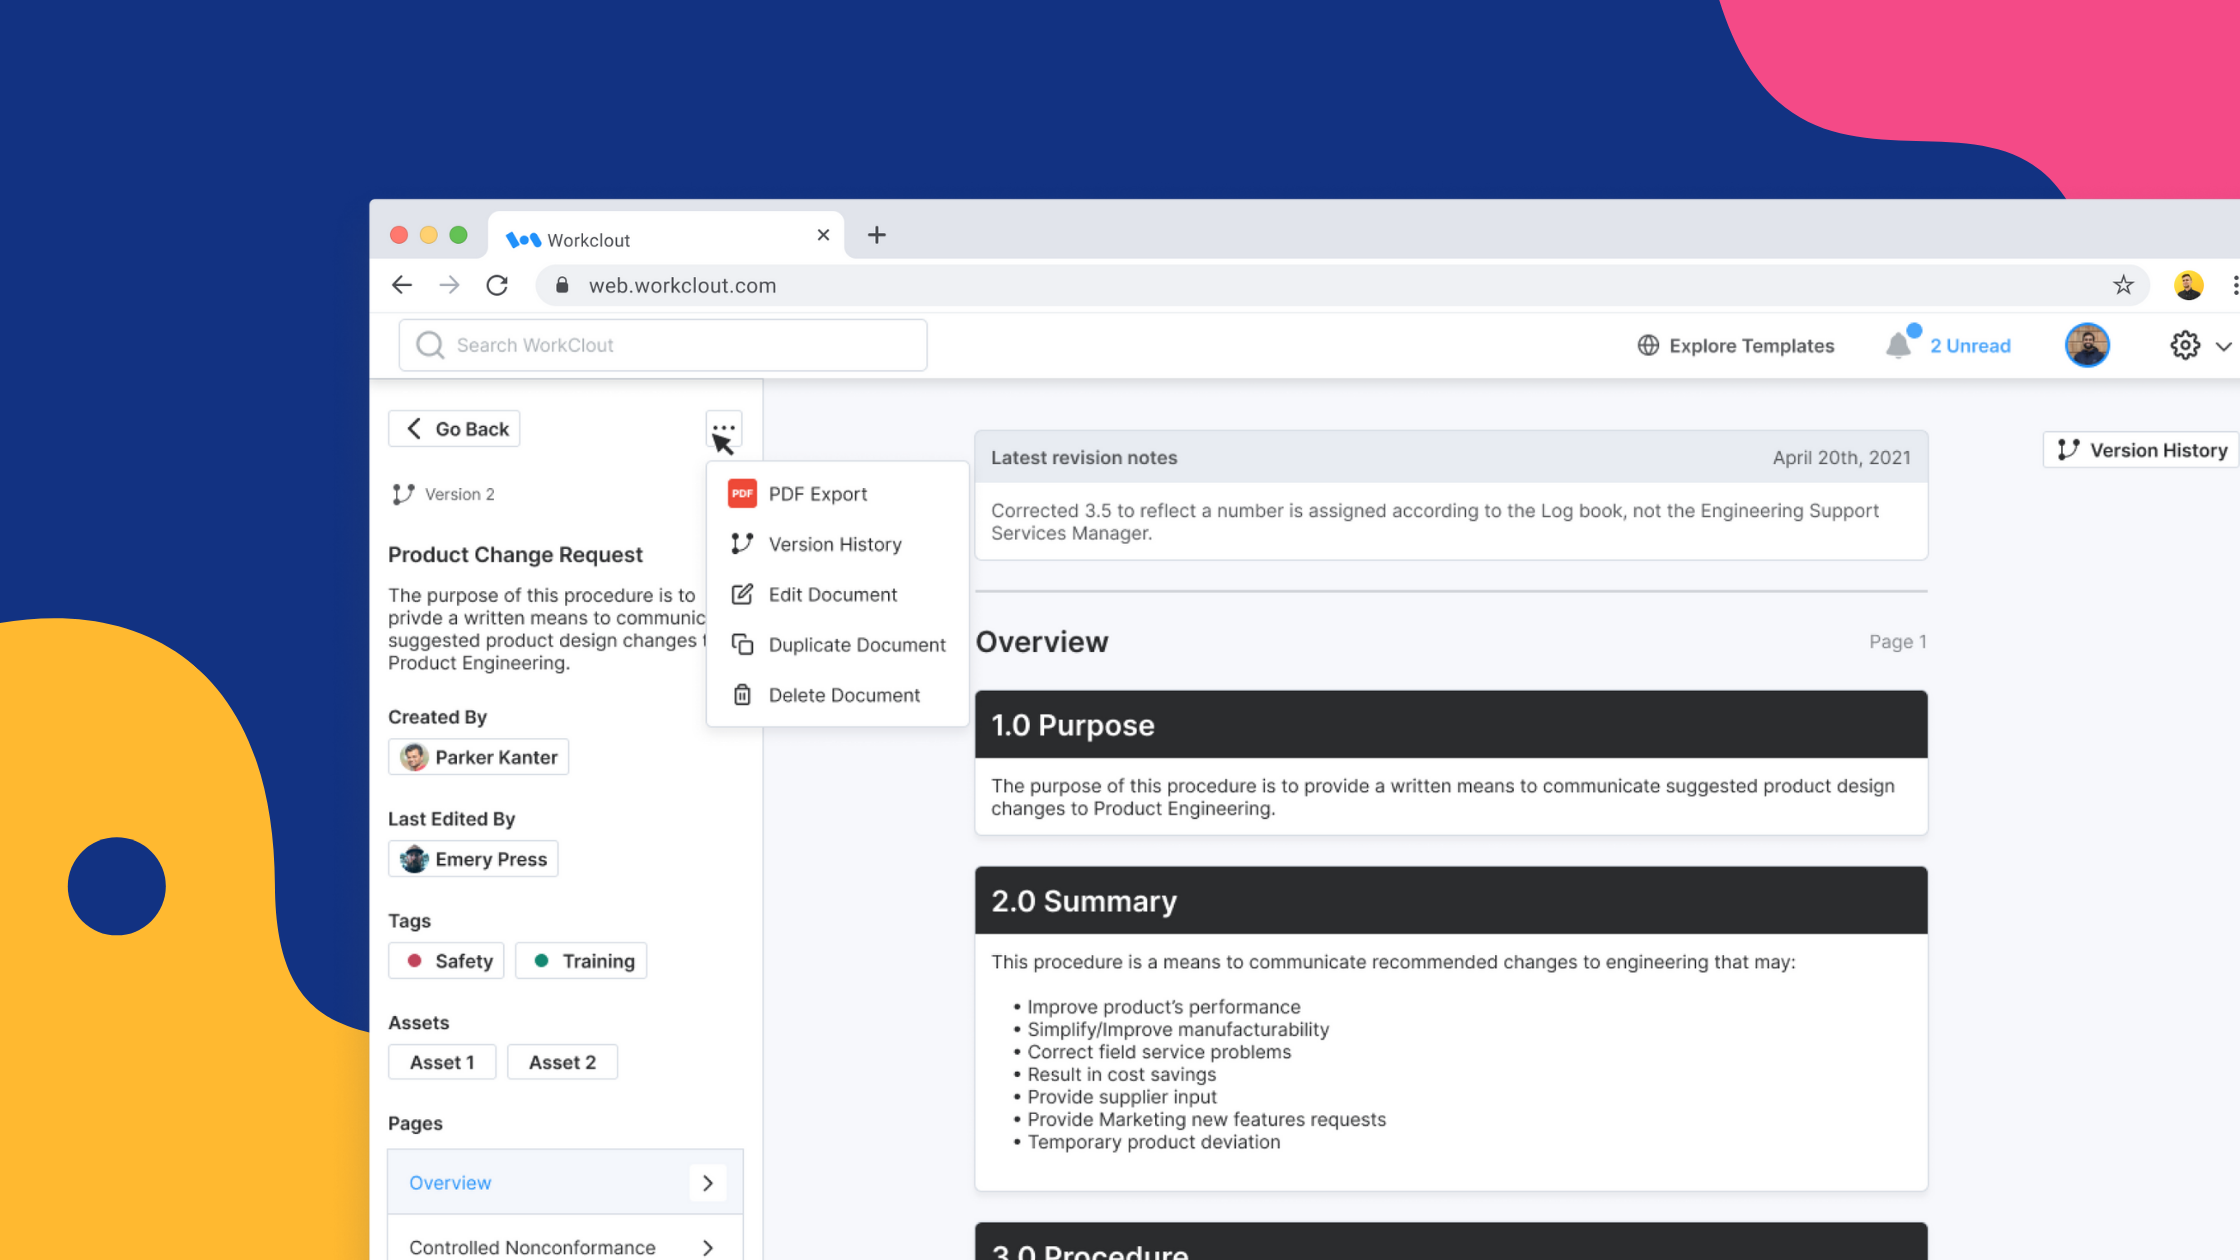 New Features: New Documents, Folder Management, Upload Files, + More